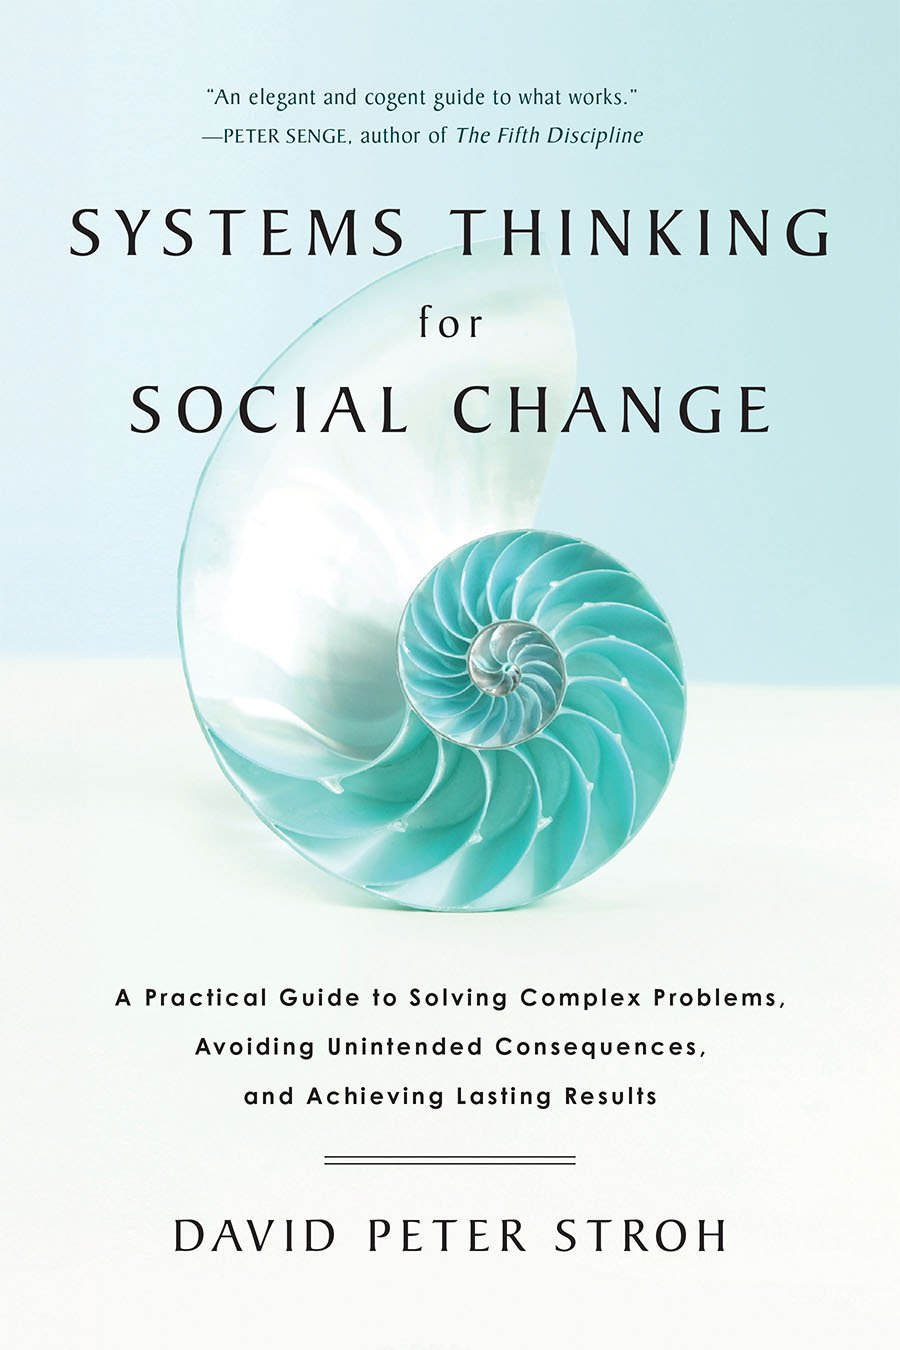 The Systems Thinking For Social Change cover